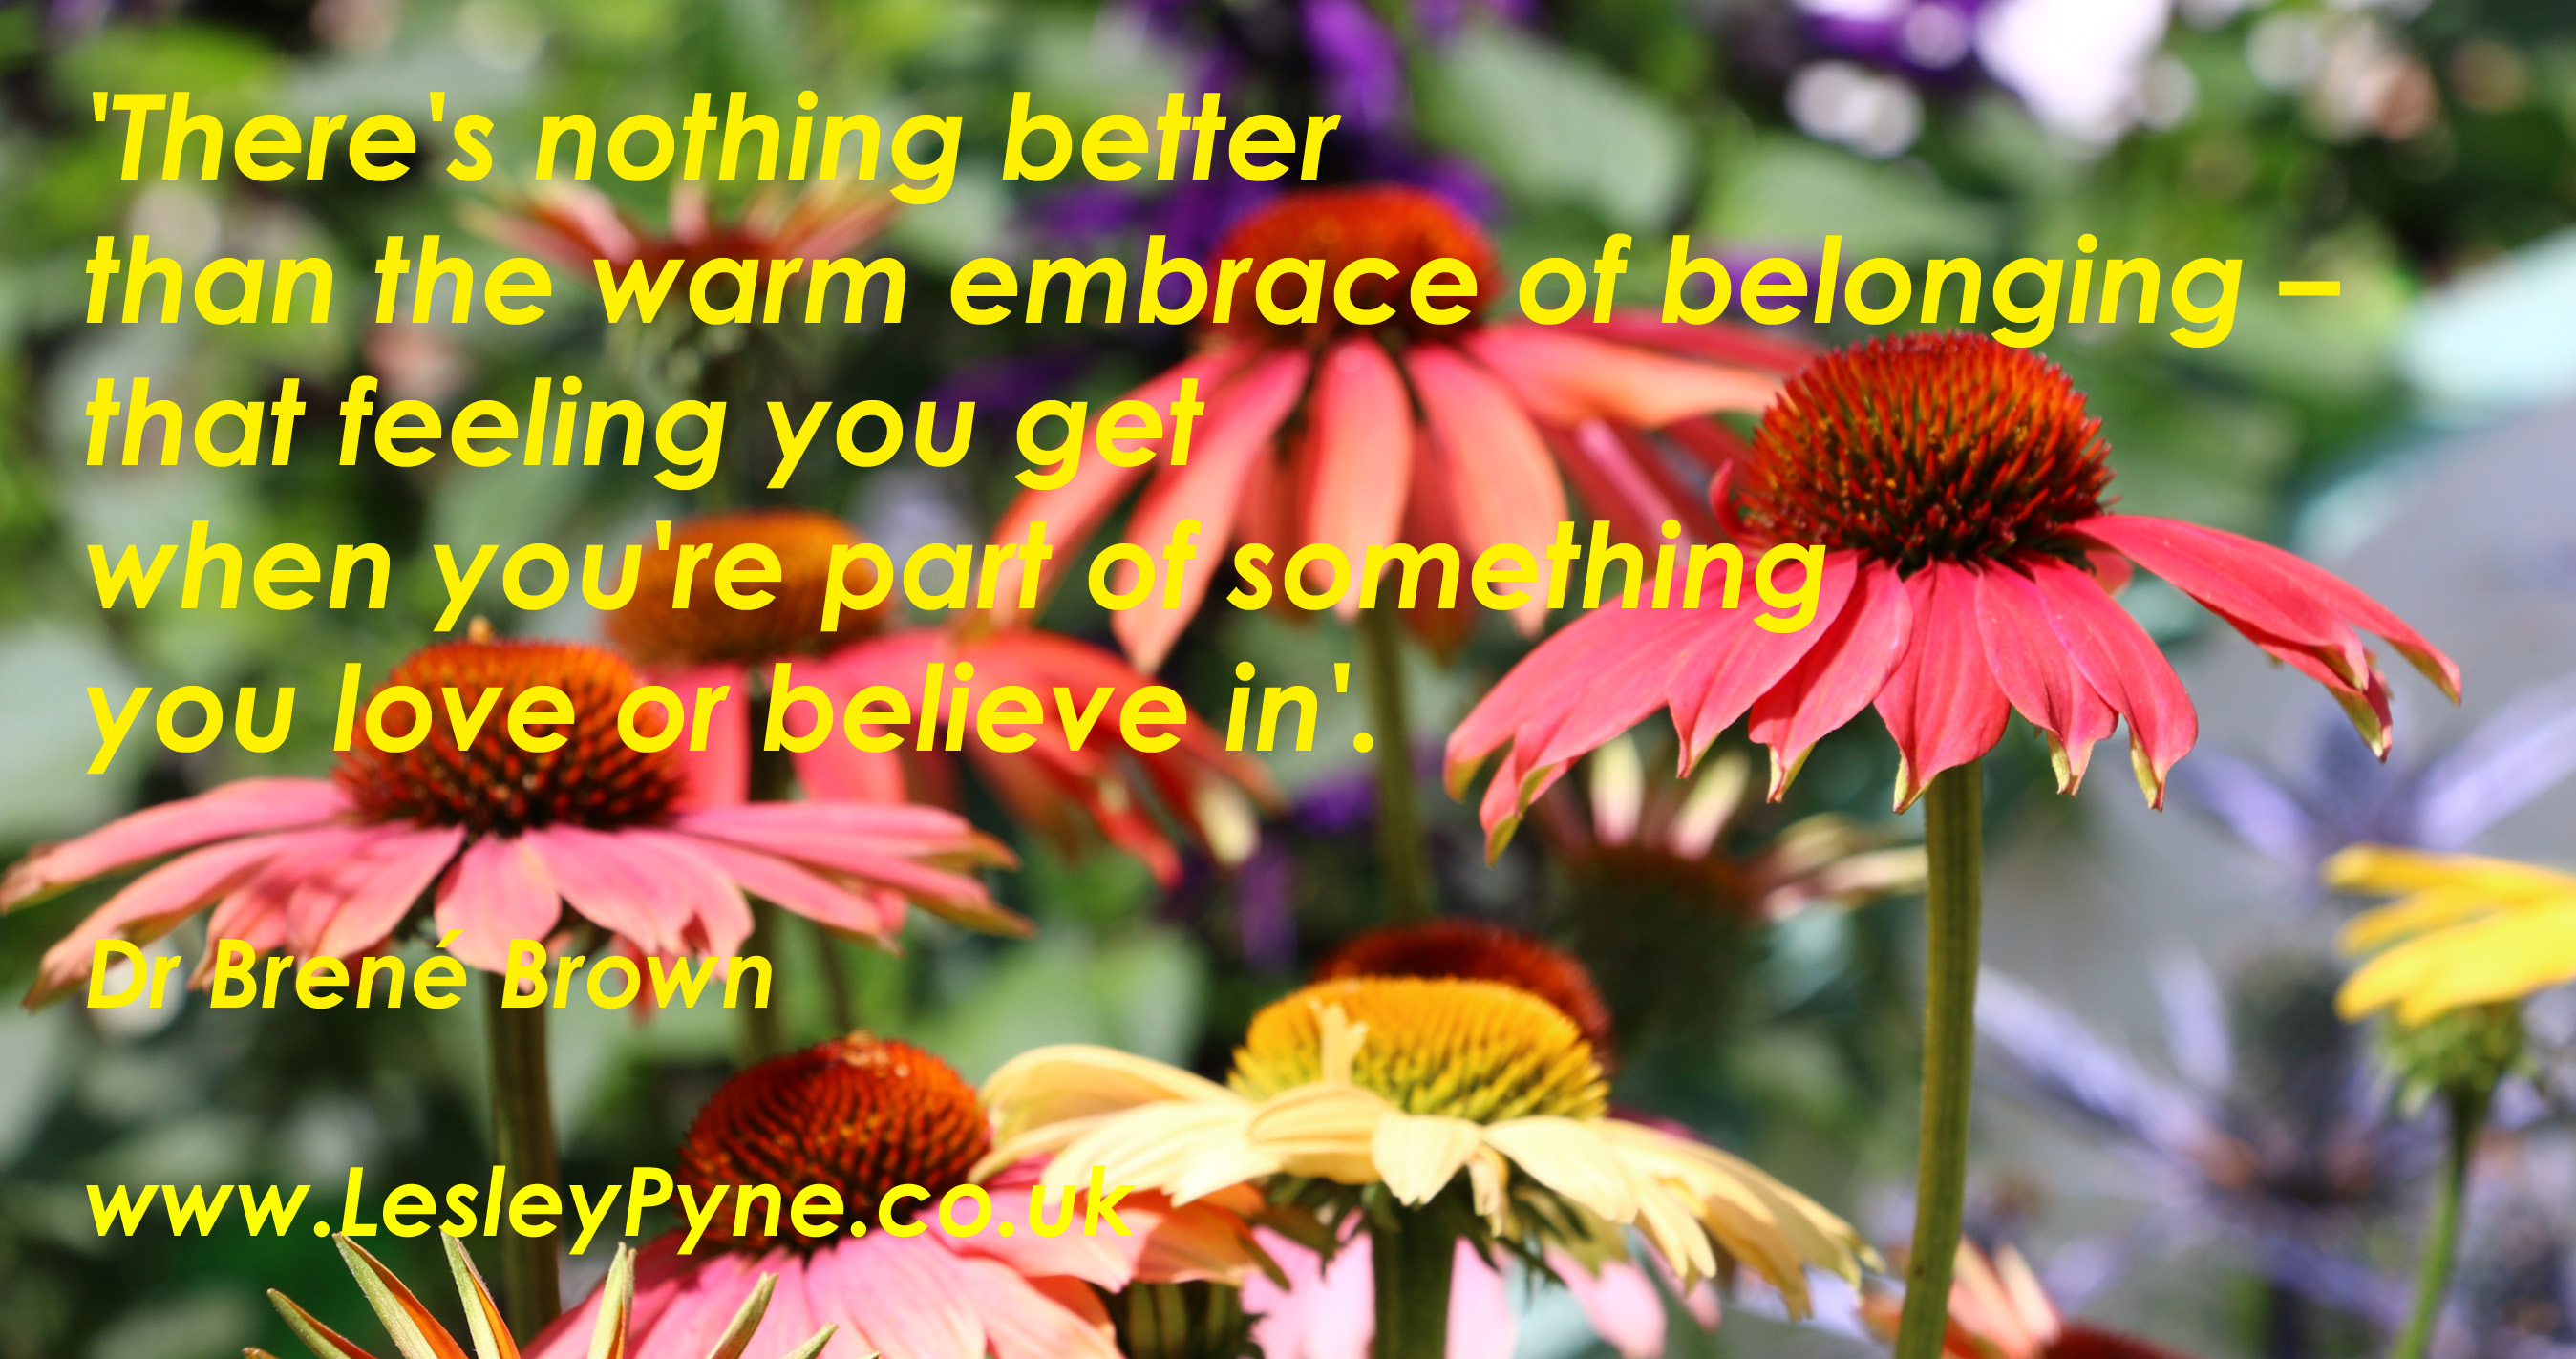 The warm embrace of belonging